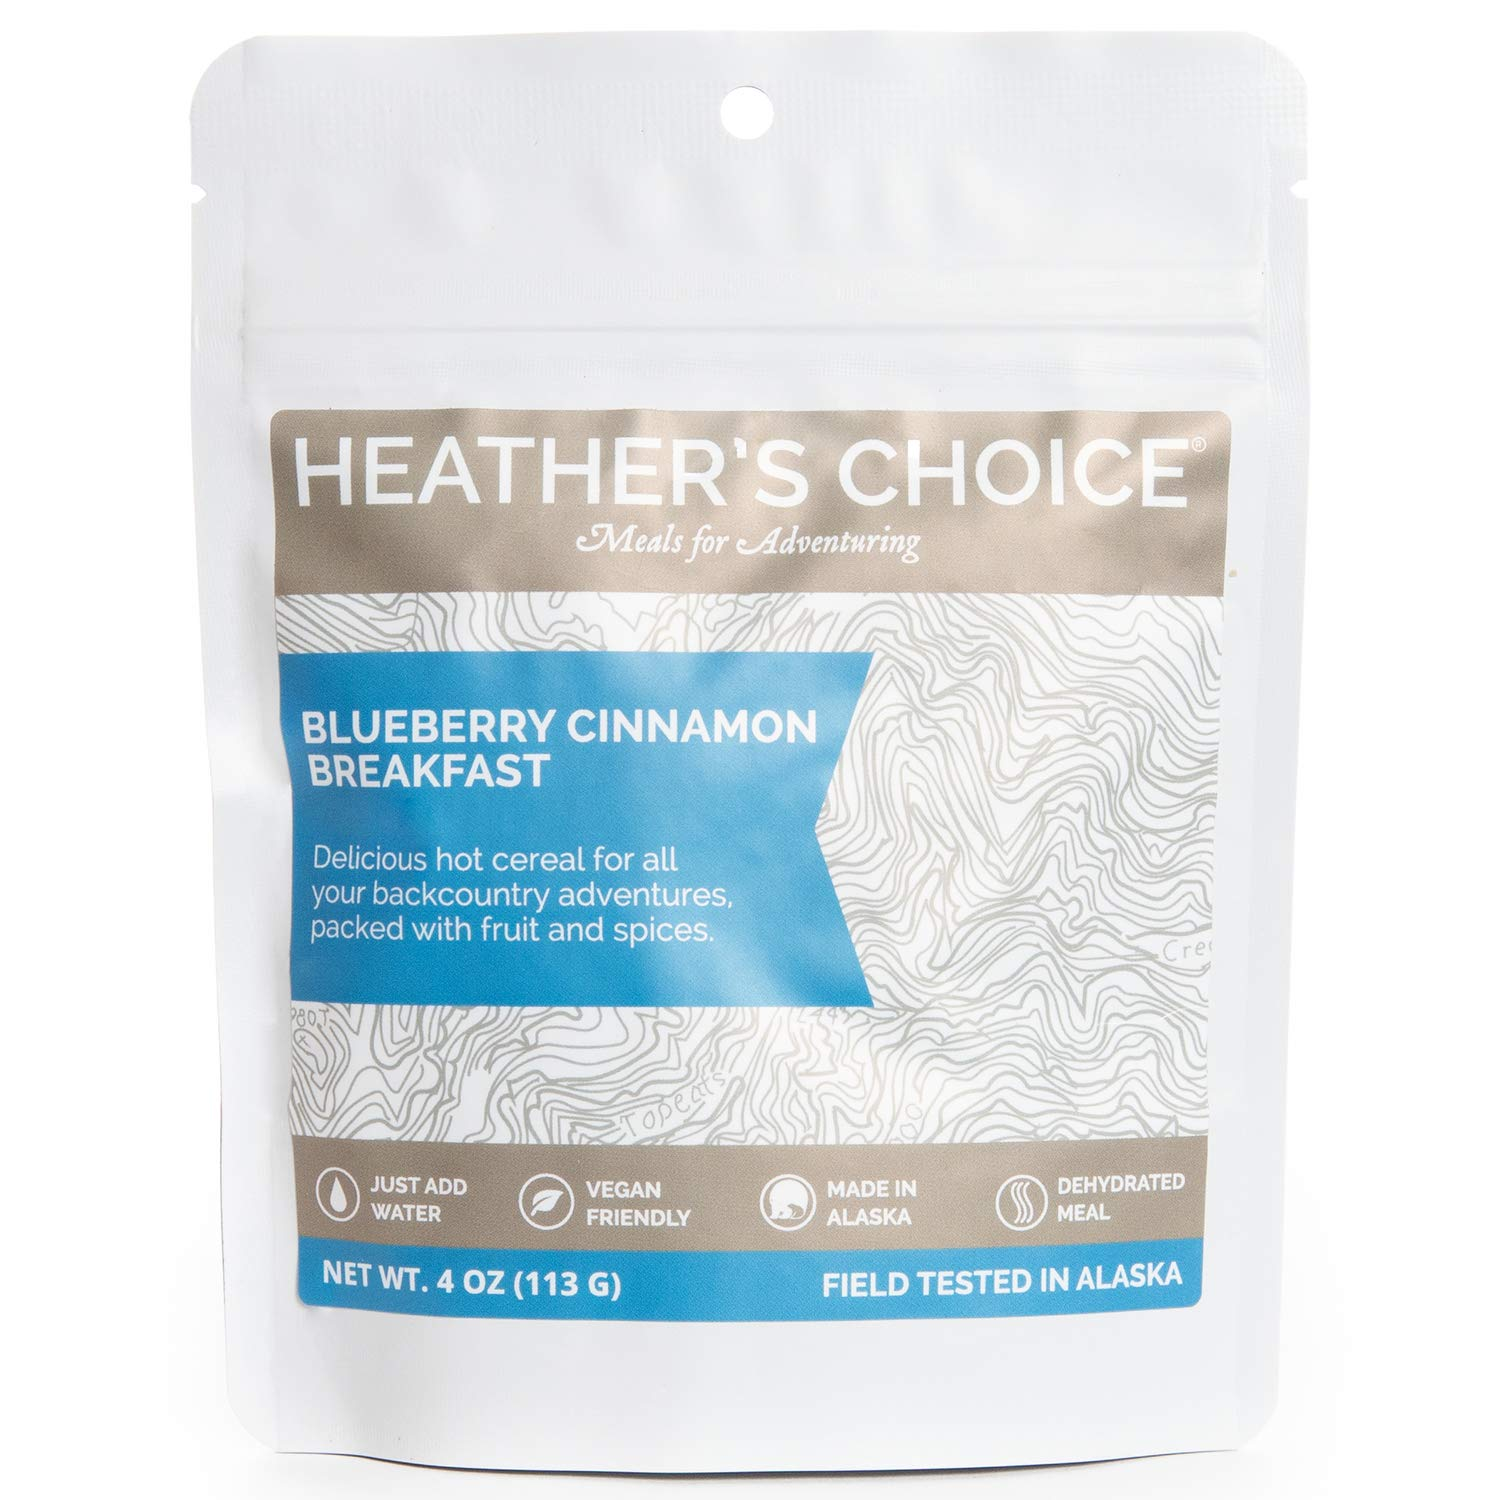 Heather's Choice, Blueberry Cinnamon Gluten-Free Buckwheat Breakfast, Wholesome, Allergen-Friendly Dehydrated Food for Backpacking, Camping, Hunting and Travel (Pack of 5) by Heather's Choice